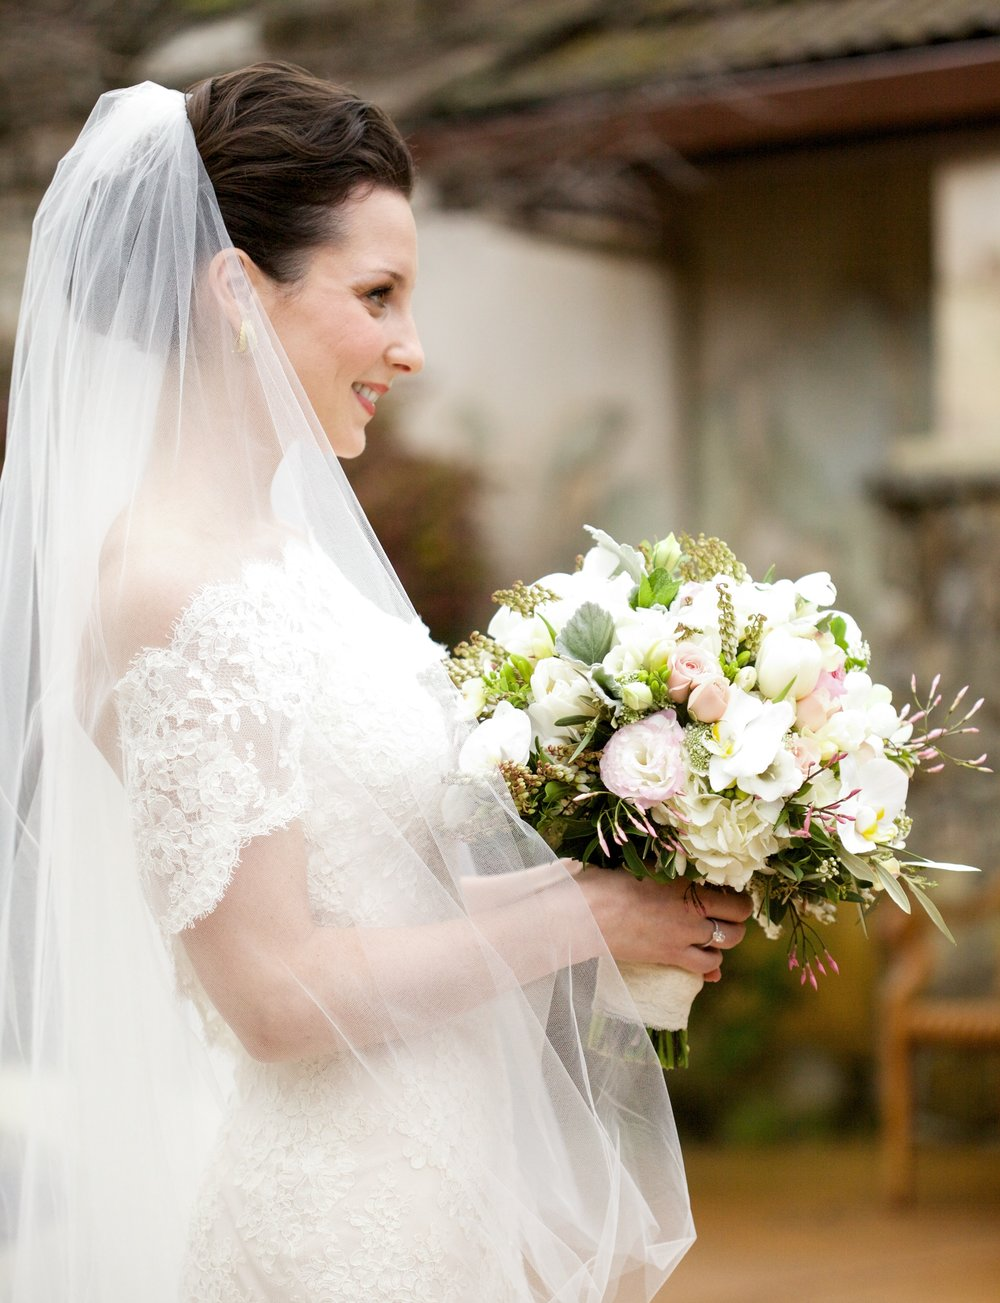 Copy of Napa-Yountville-Bridal-Beauty.jpg